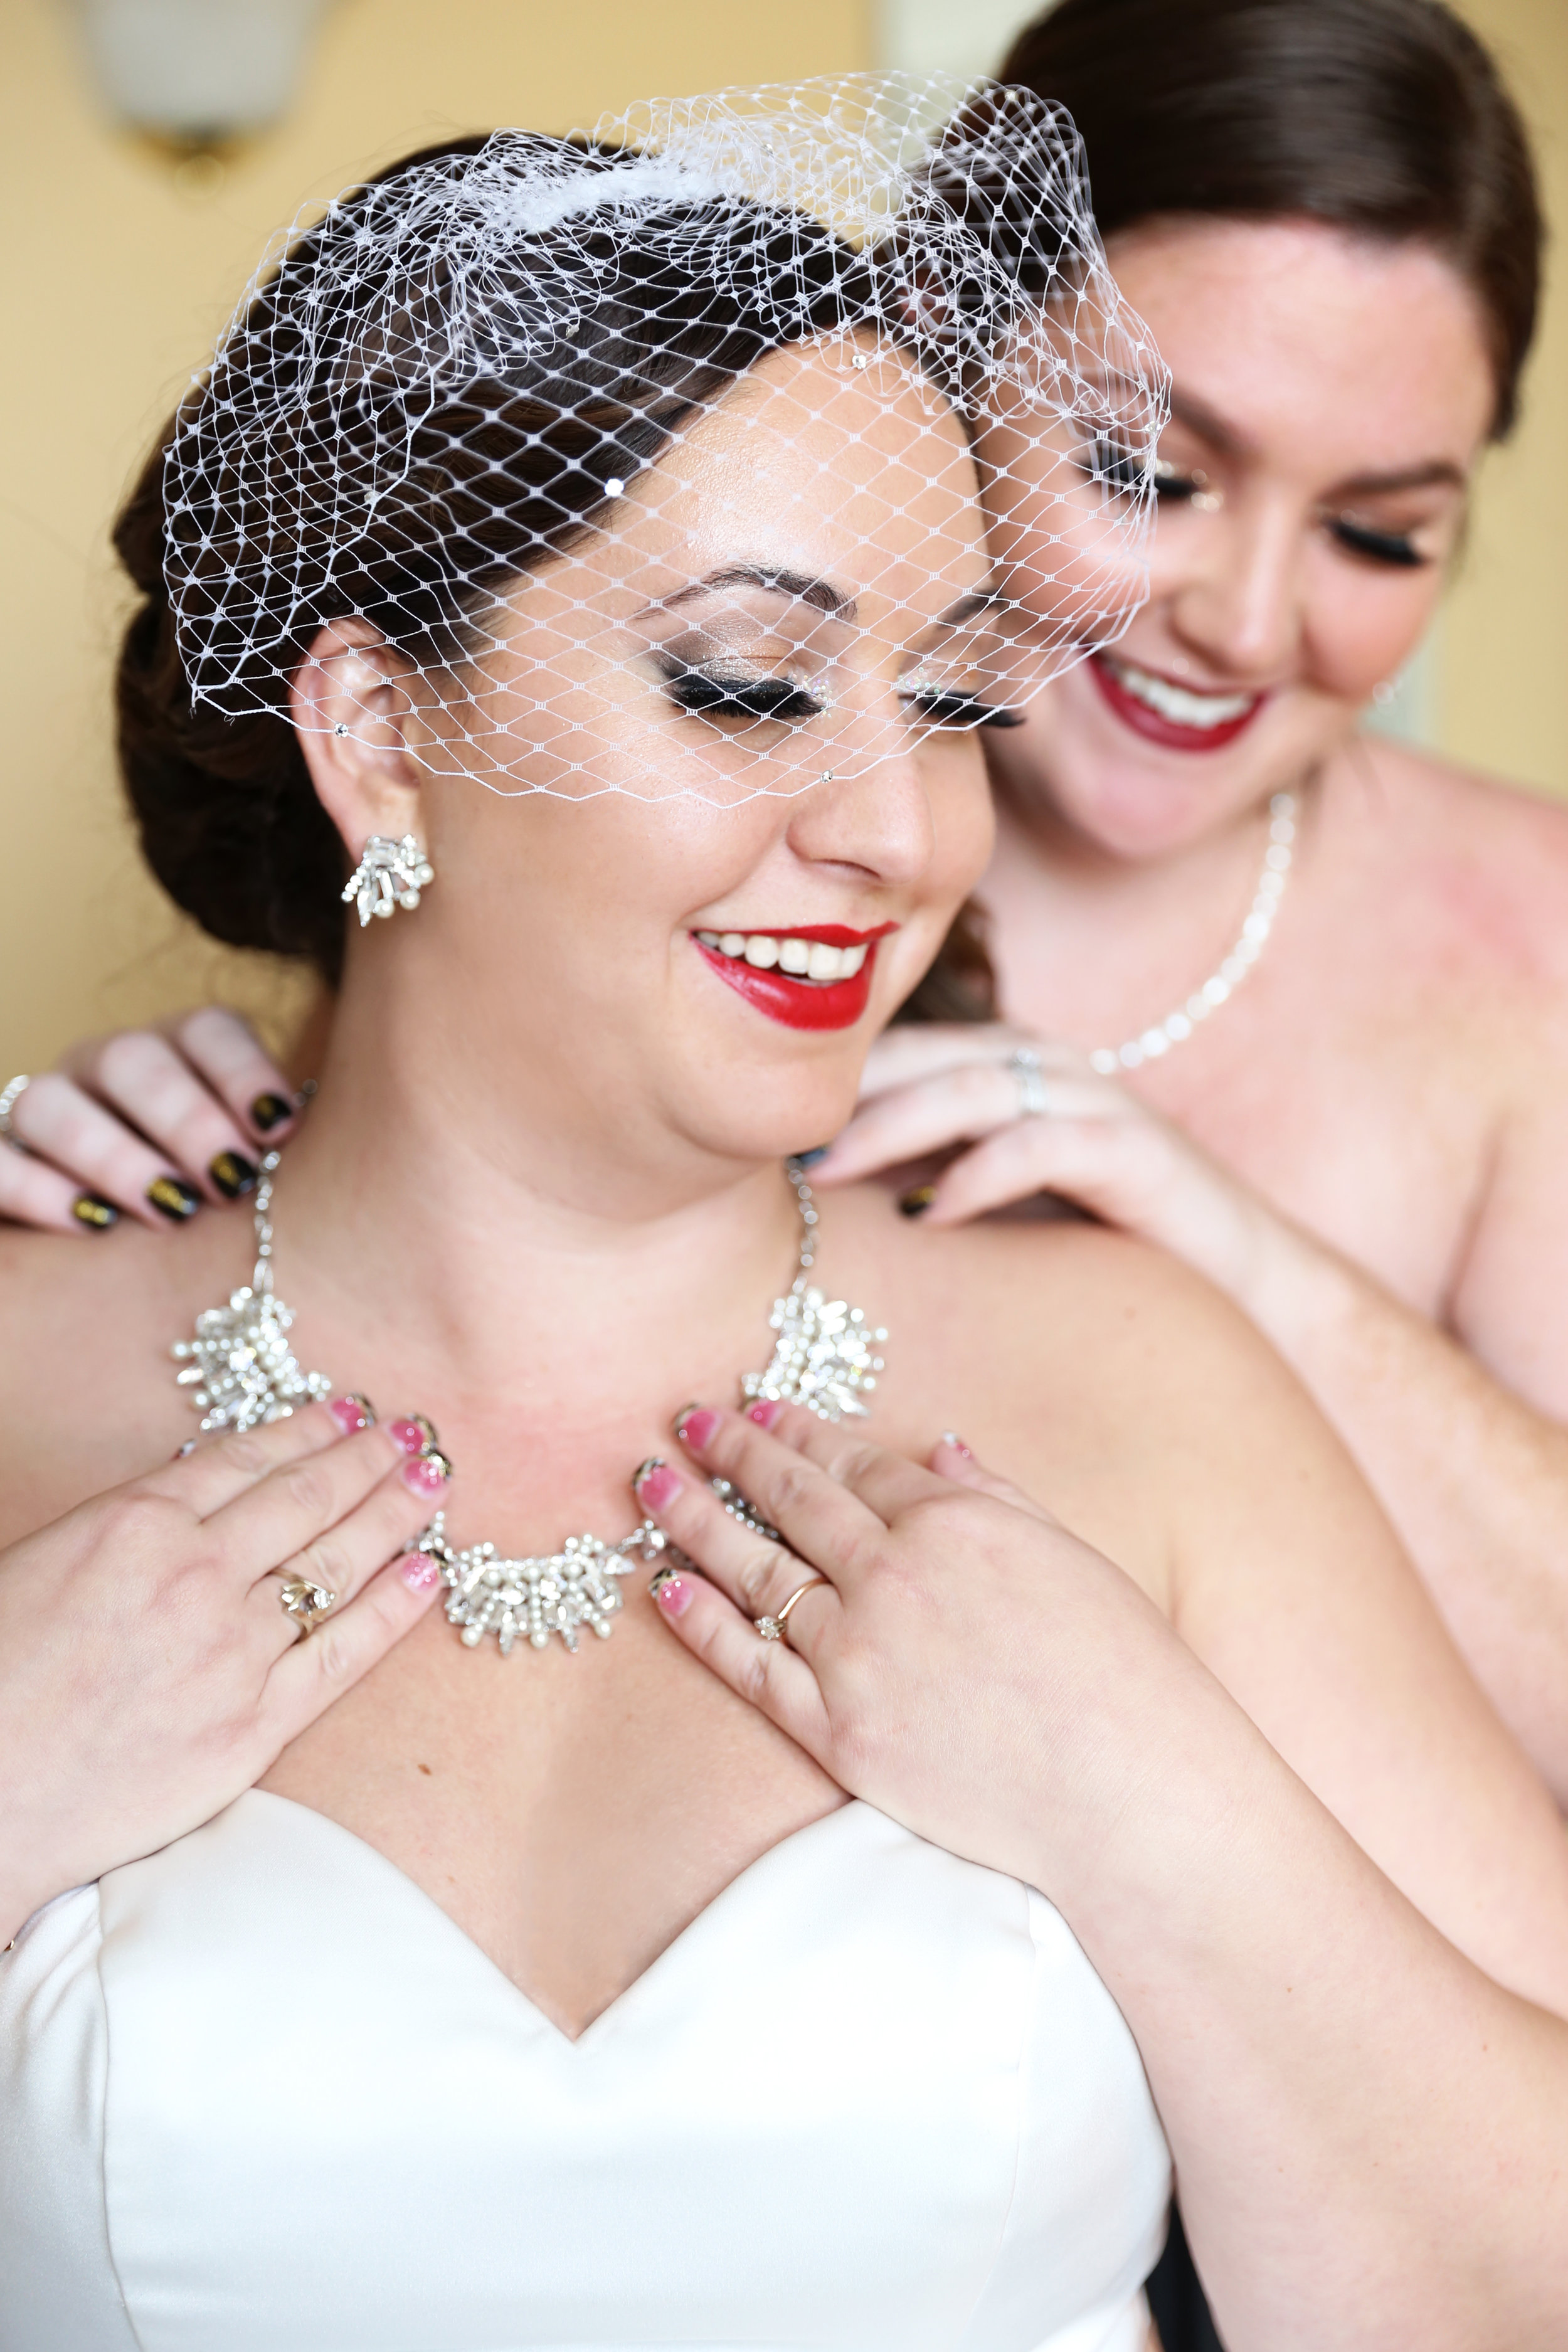 The bride boasted an Art Deco inspired necklace, a vintage birdcage veil, and a bright red lip that popped against all the black and white elements in the wedding!